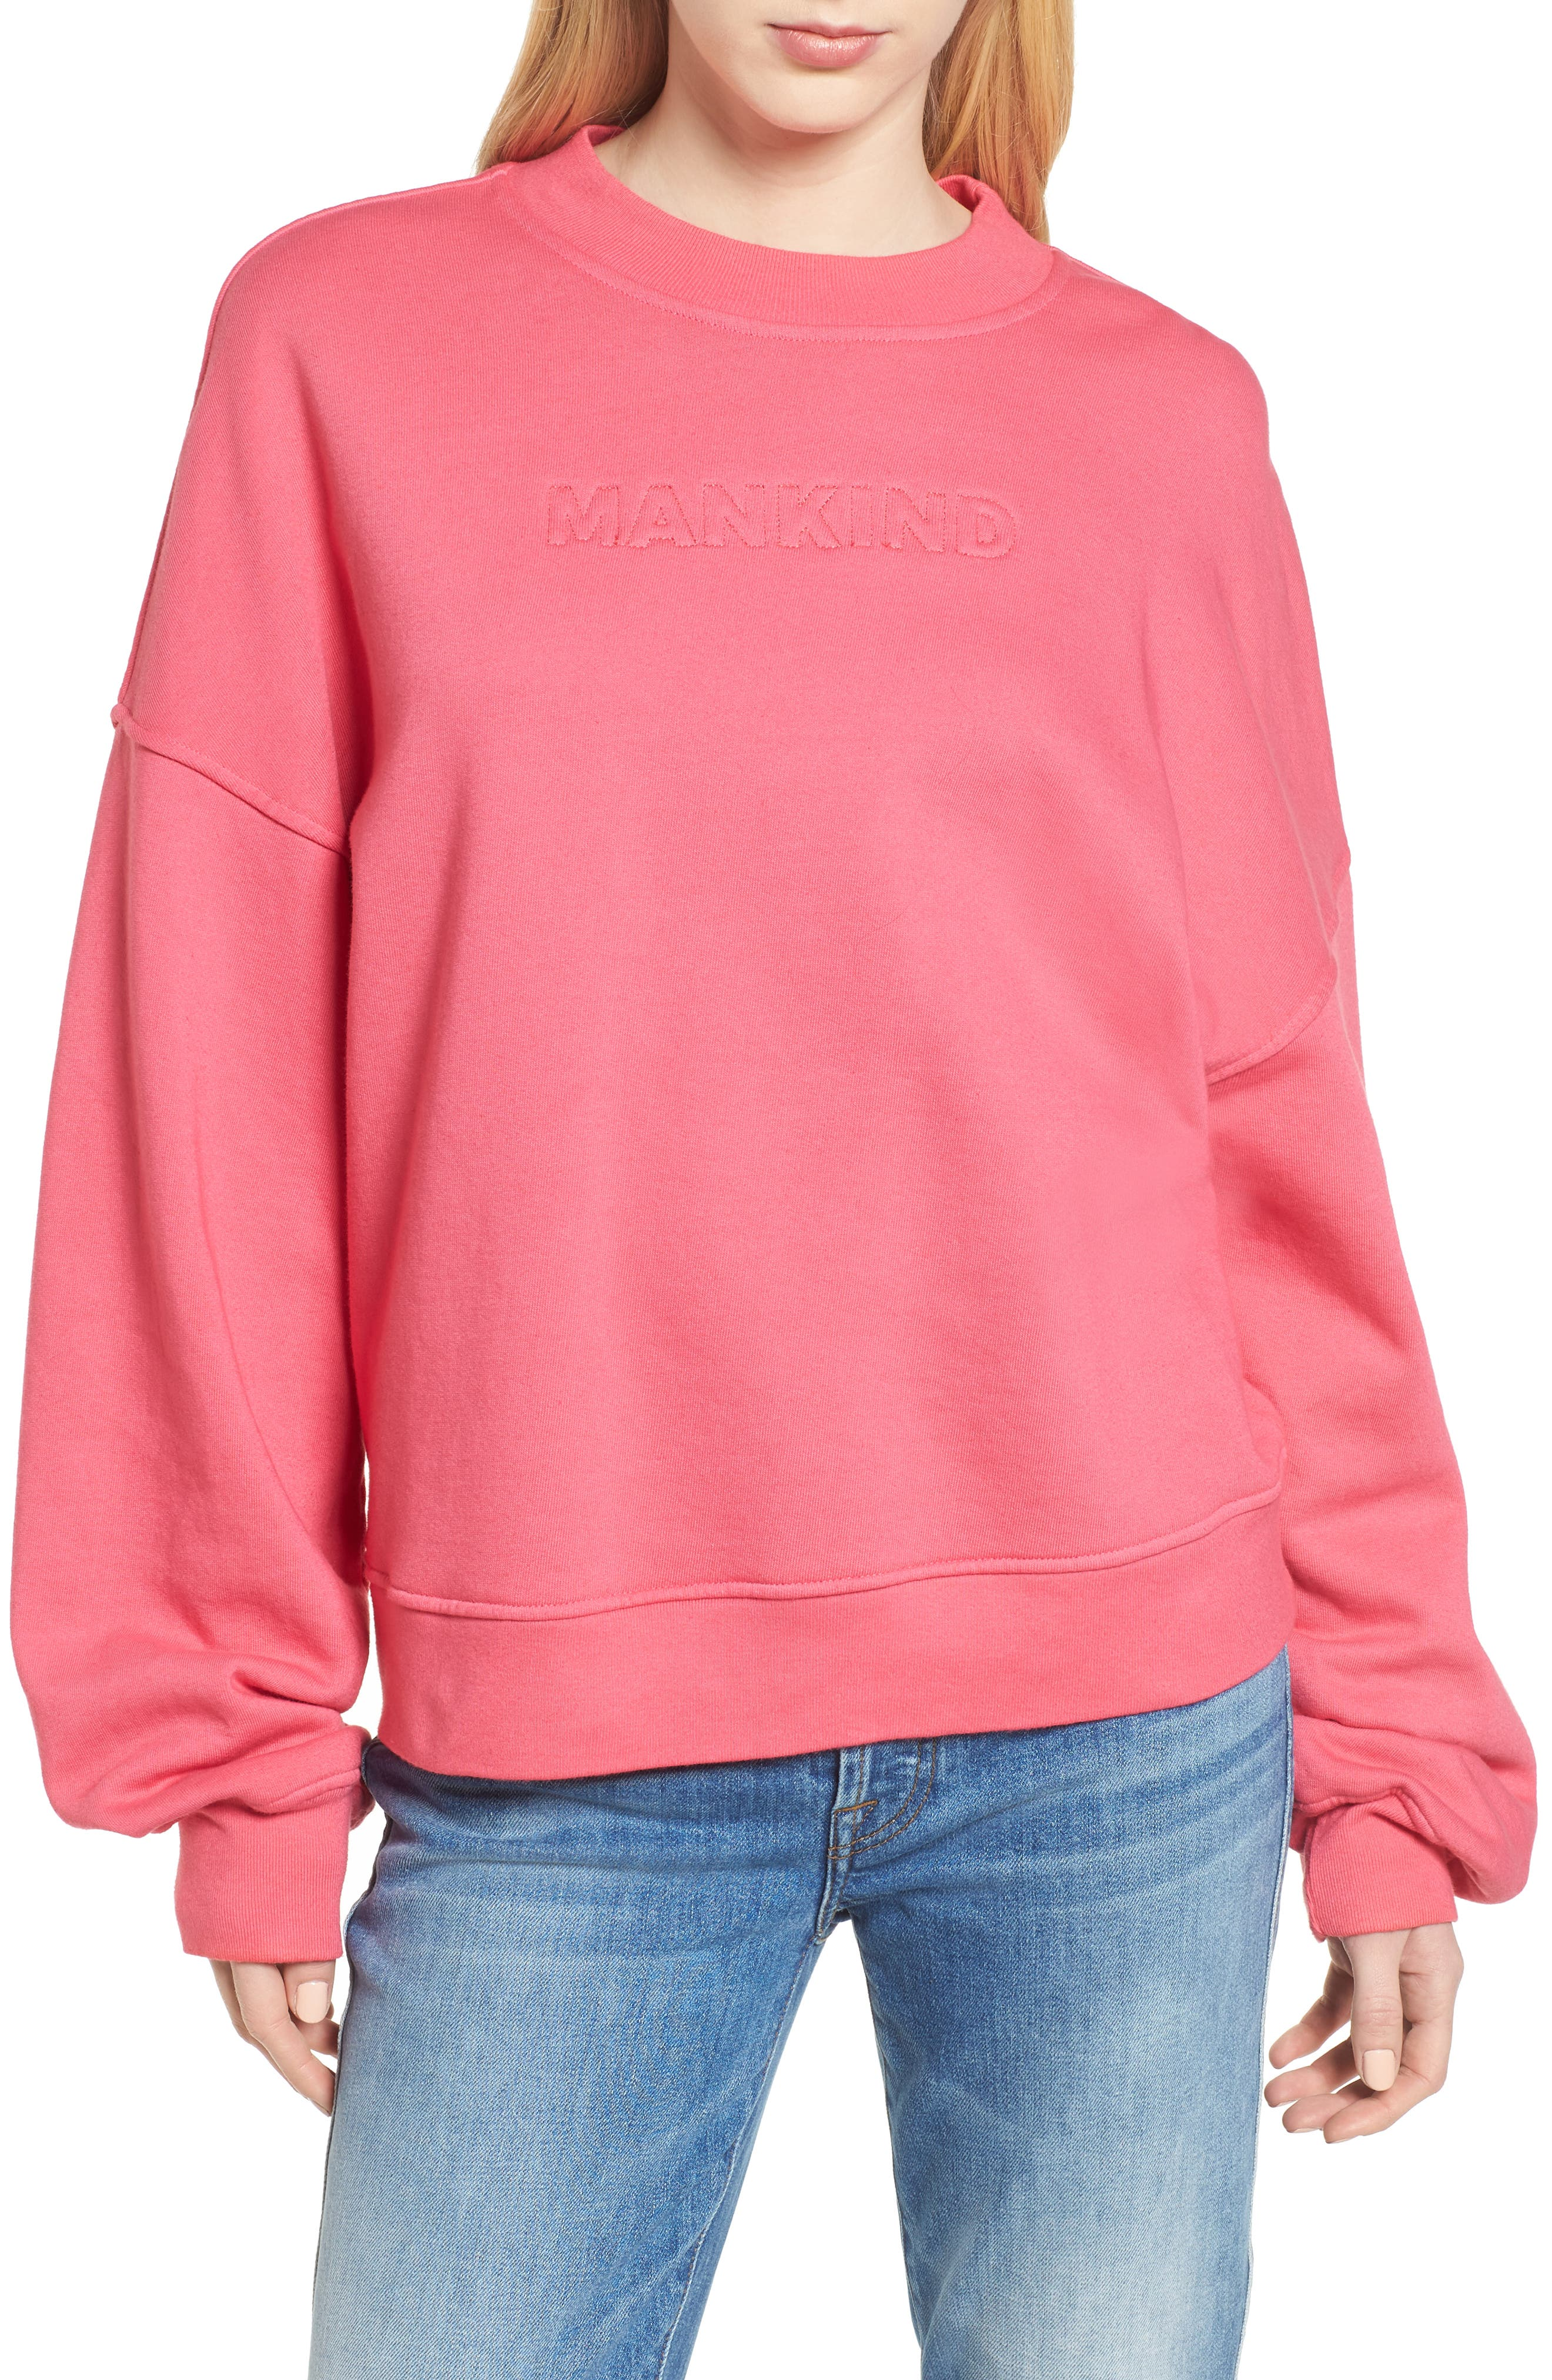 Mankind Outline Embroidered Sweatshirt,                         Main,                         color,